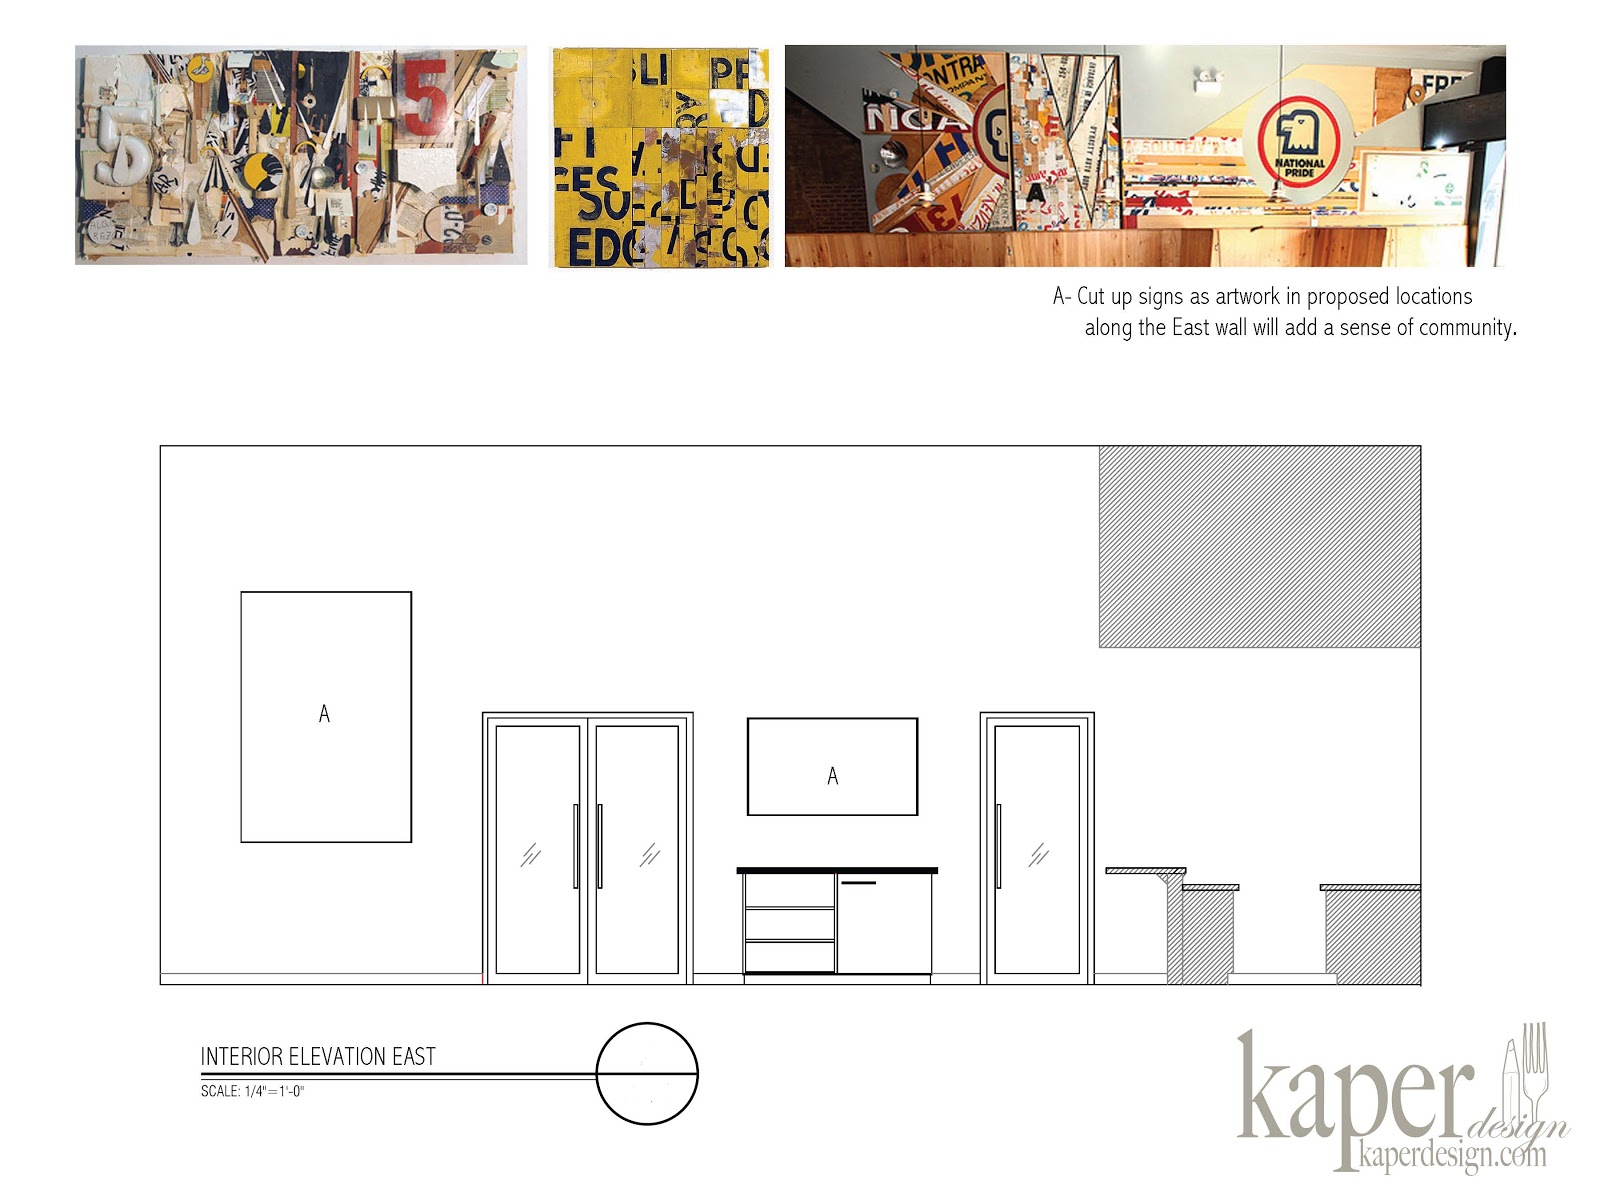 Location Dallas TX Completed In Progress Opening April 1 2013 Scope Of Work Concept Creation Schematic Design Interior Floor Plan Layout